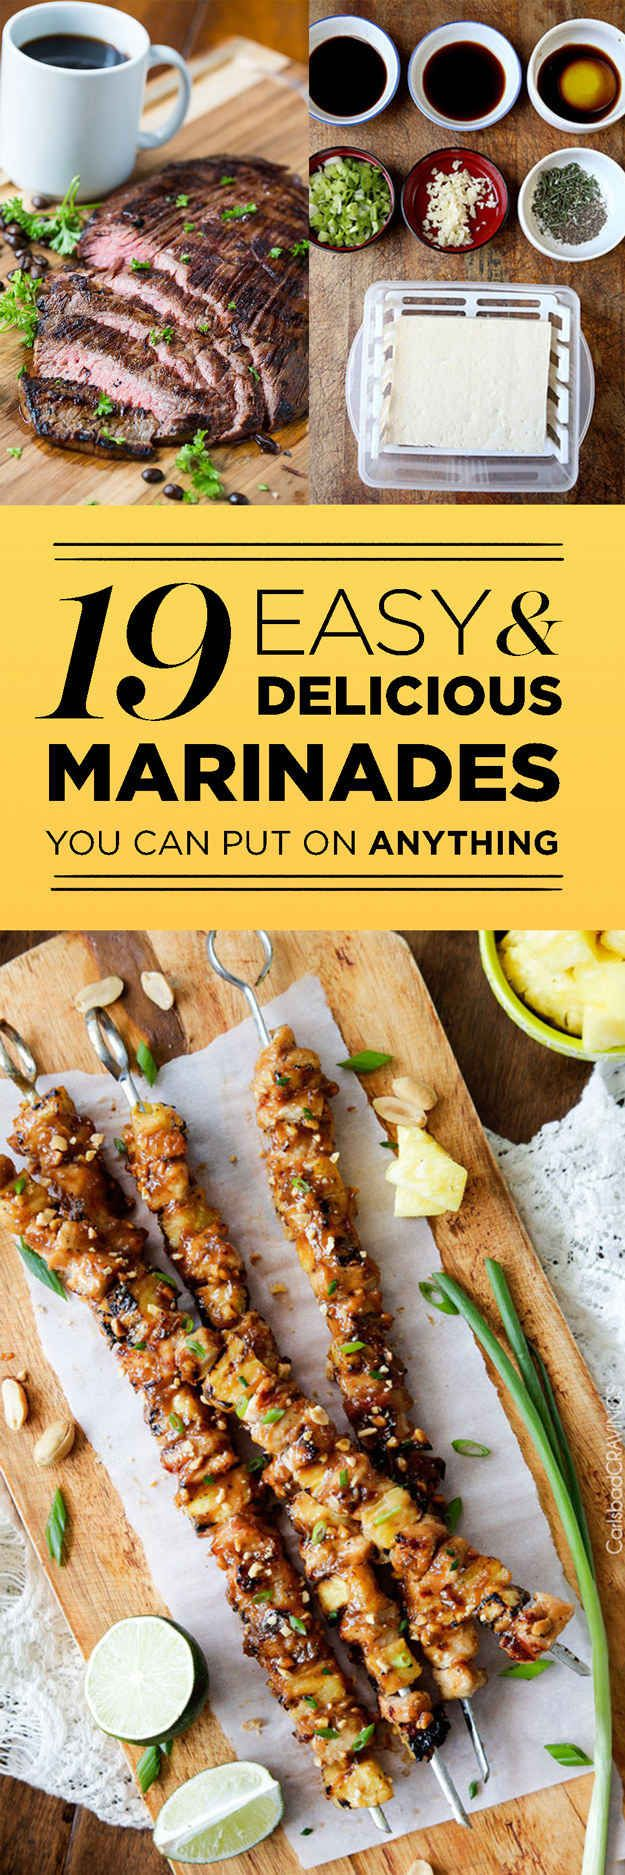 19 Easy Marinades That Will Make Everything More Delicious